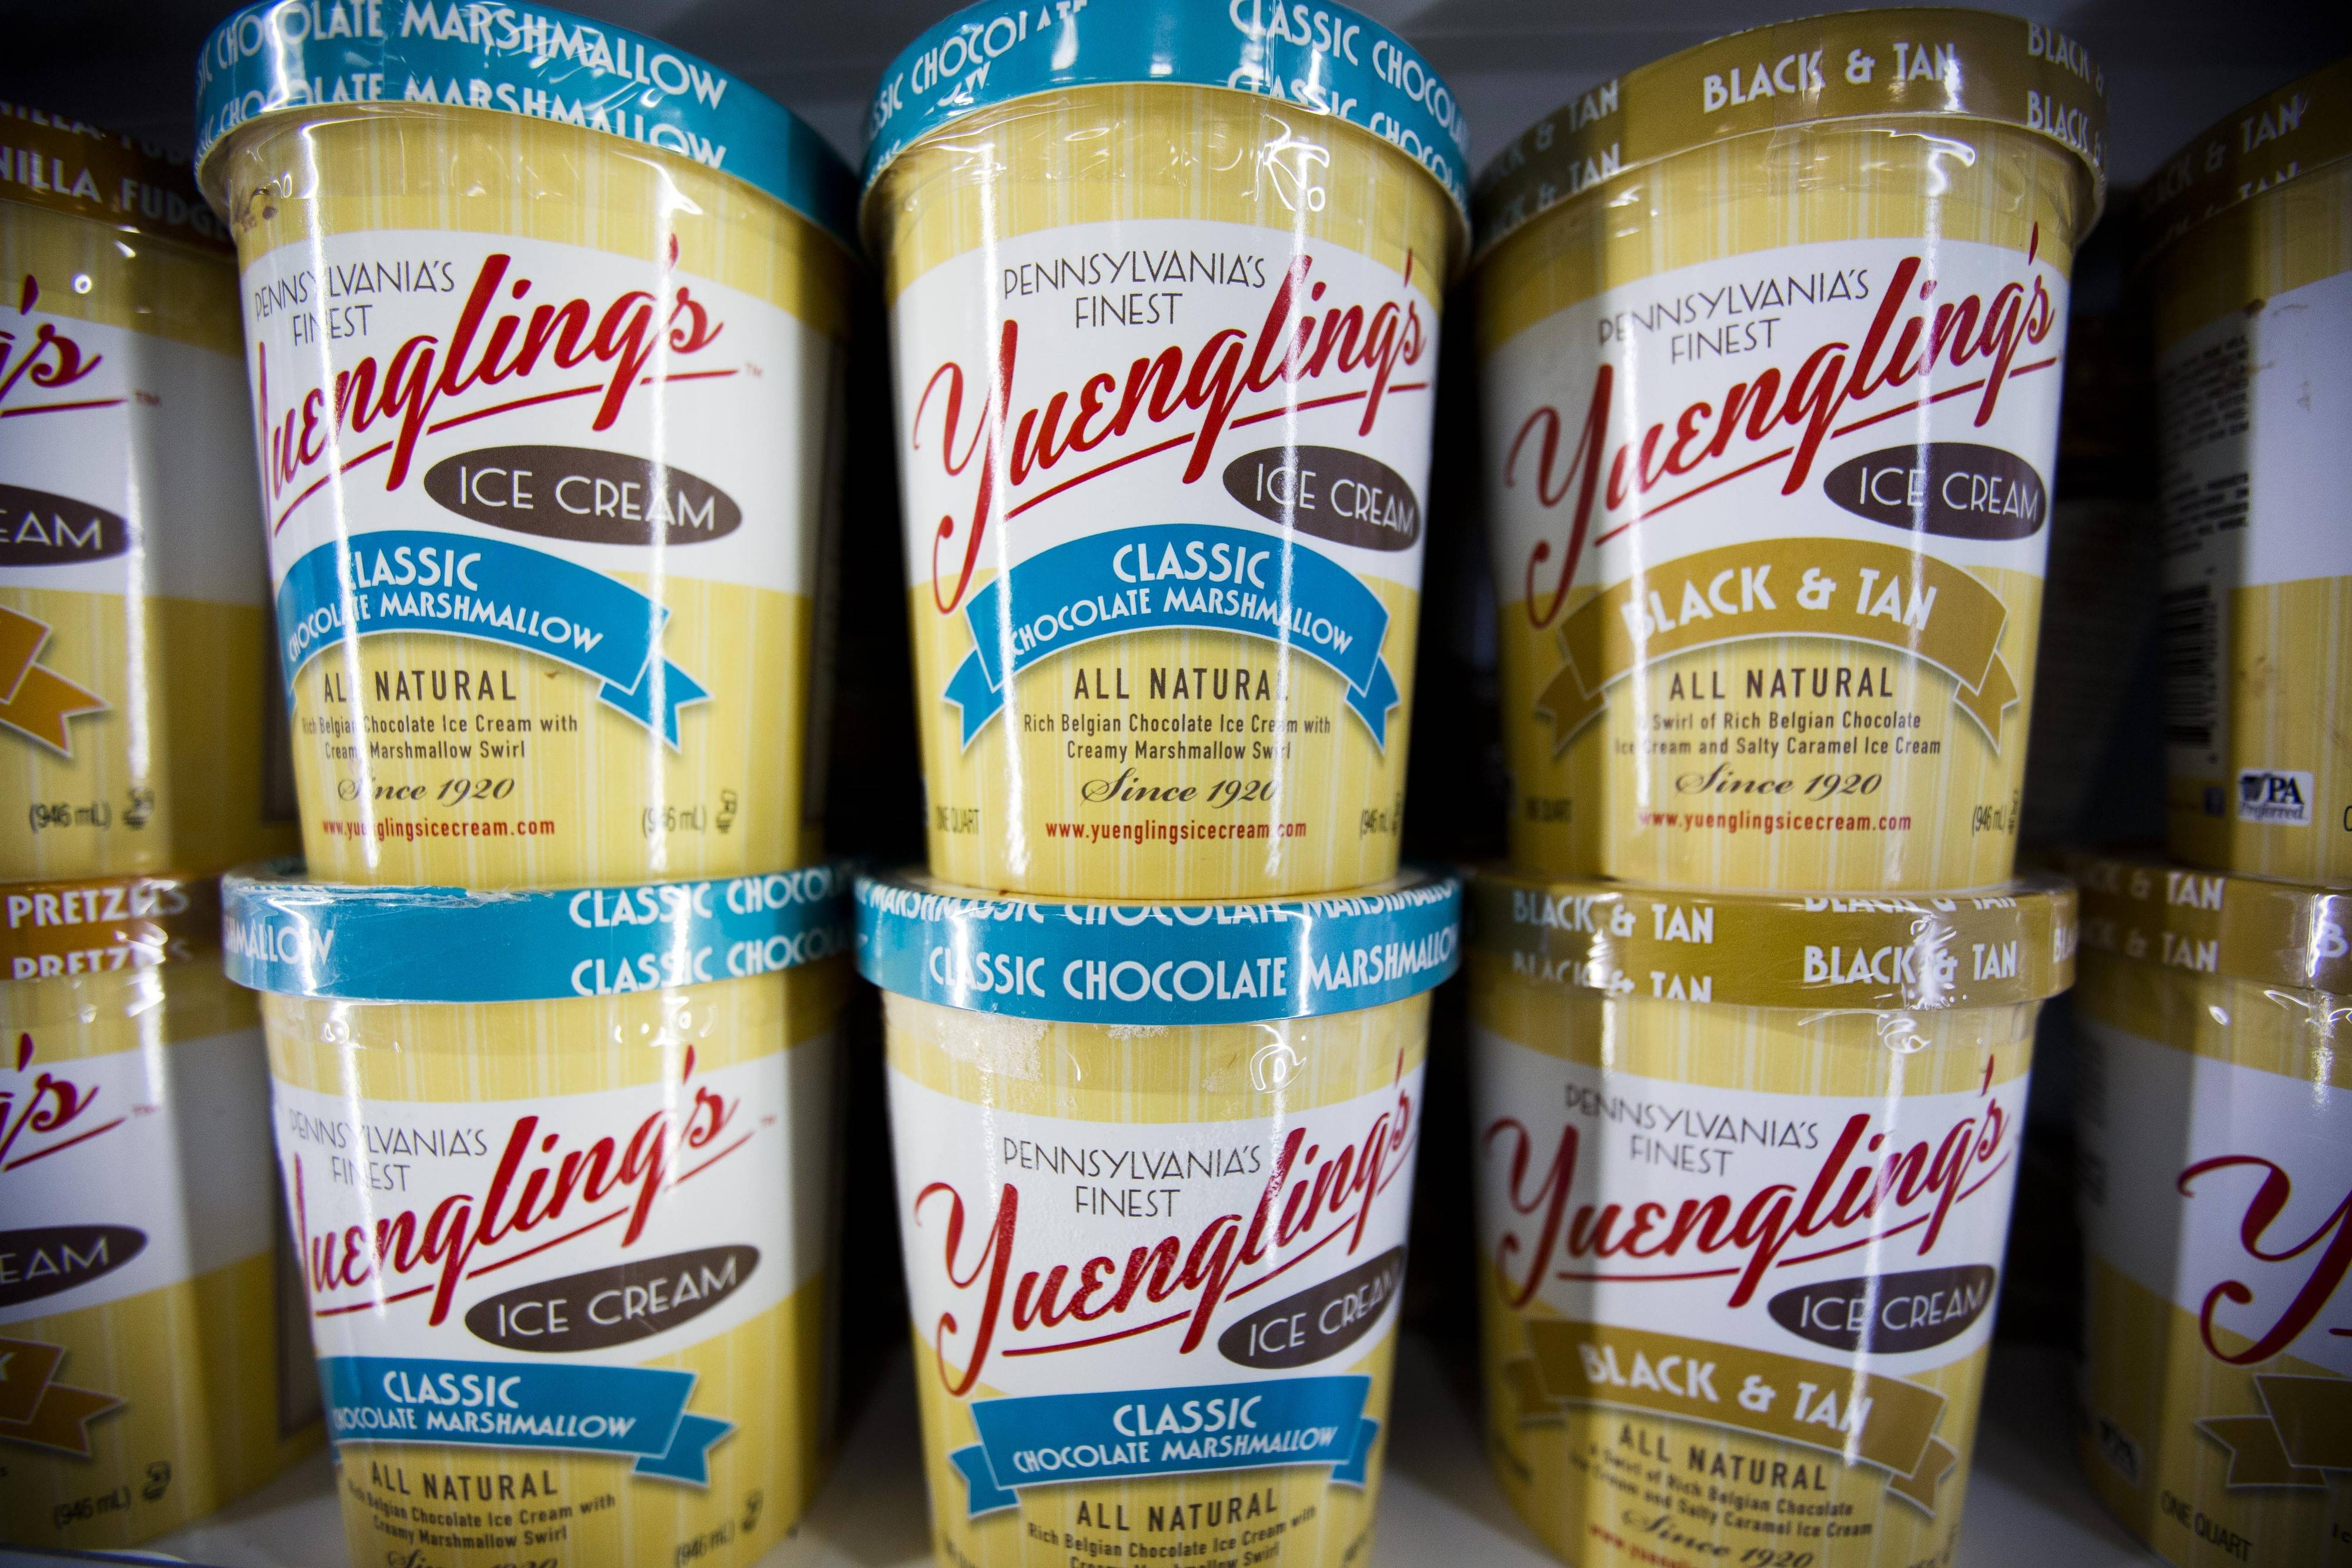 Yuengling's Ice Cream is back after an absence of nearly 30 years, available at hundreds of stores in Pennsylvania, Virginia, Maryland, West Virginia, Delaware and New Jersey.